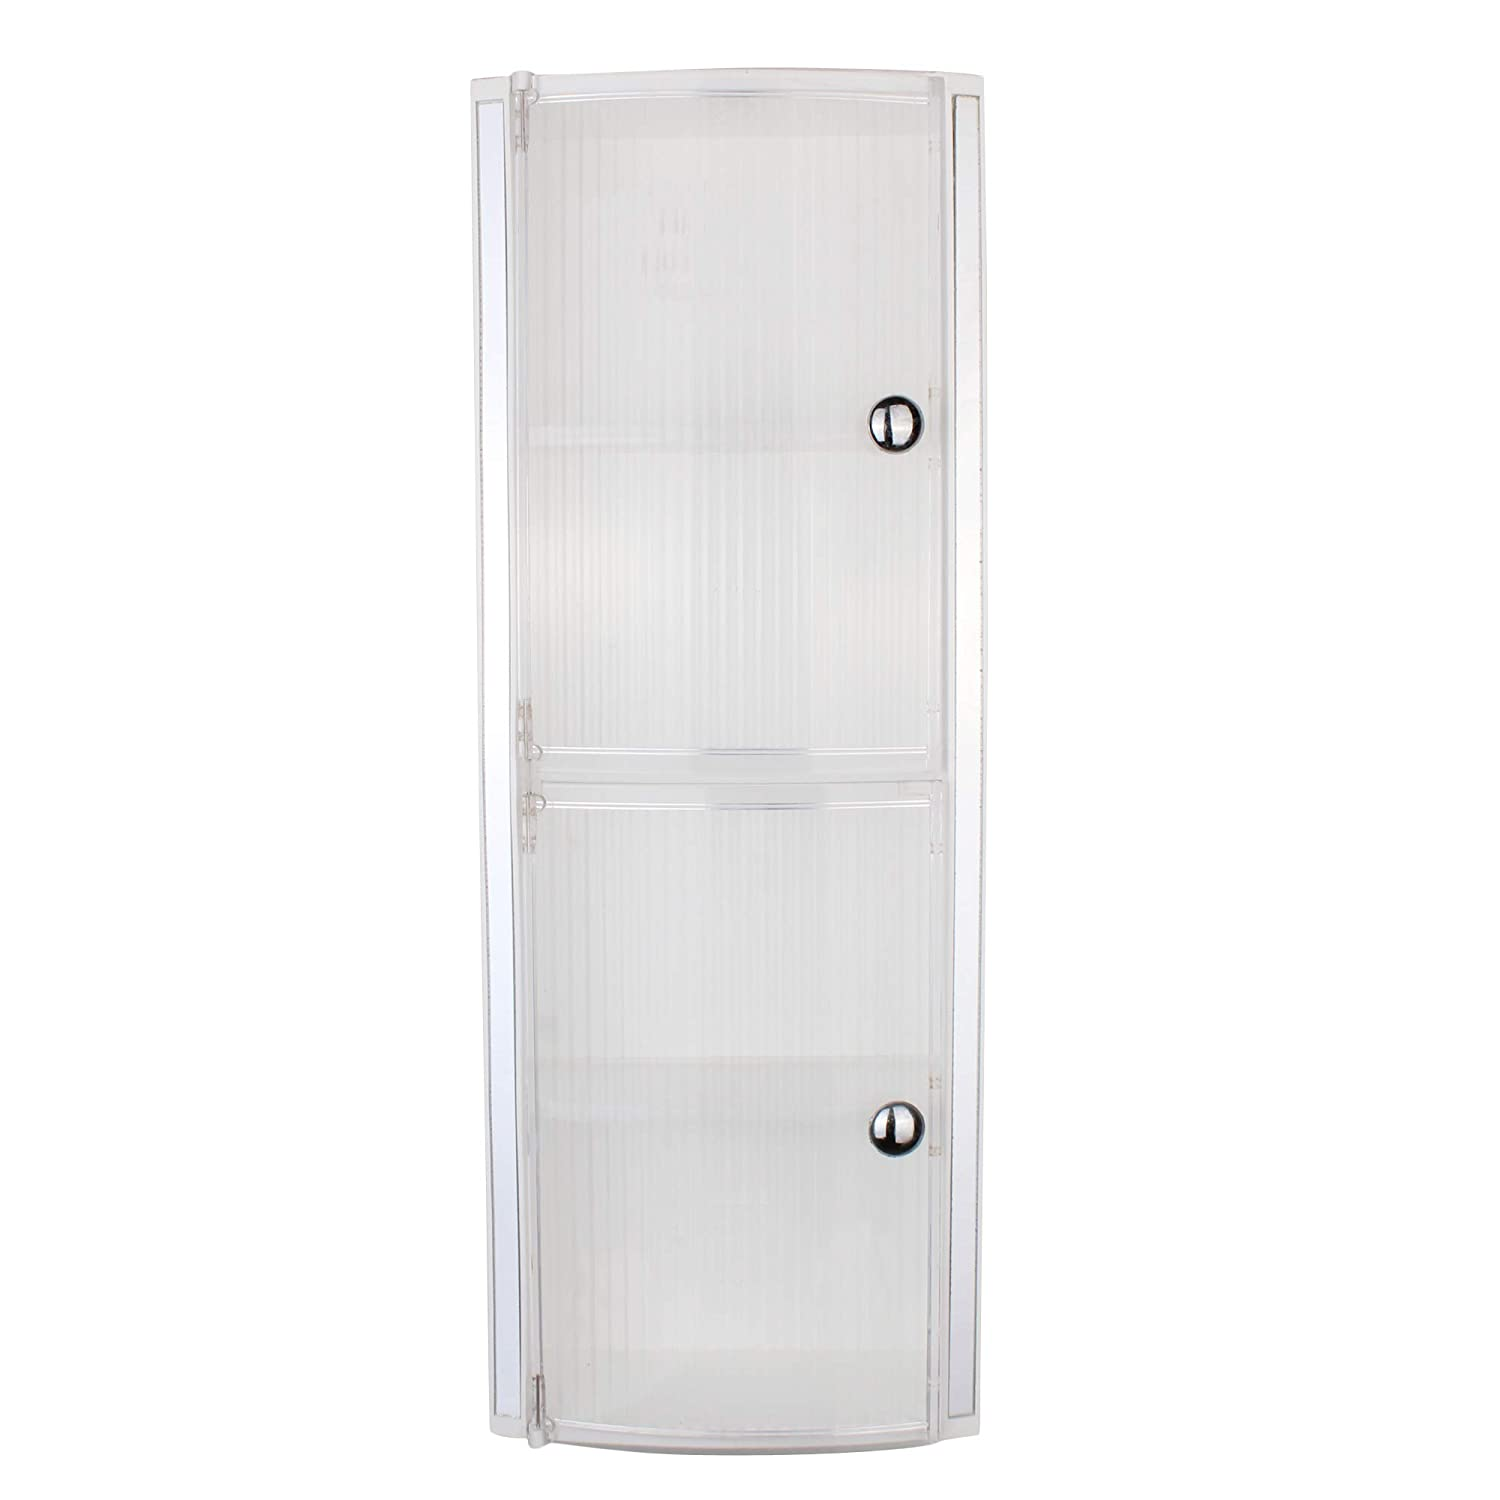 Orril Zoshomi Crystal Wall Mount Bathroom Corner Cabinet With Door And Storage White Amazon In Home Improvement